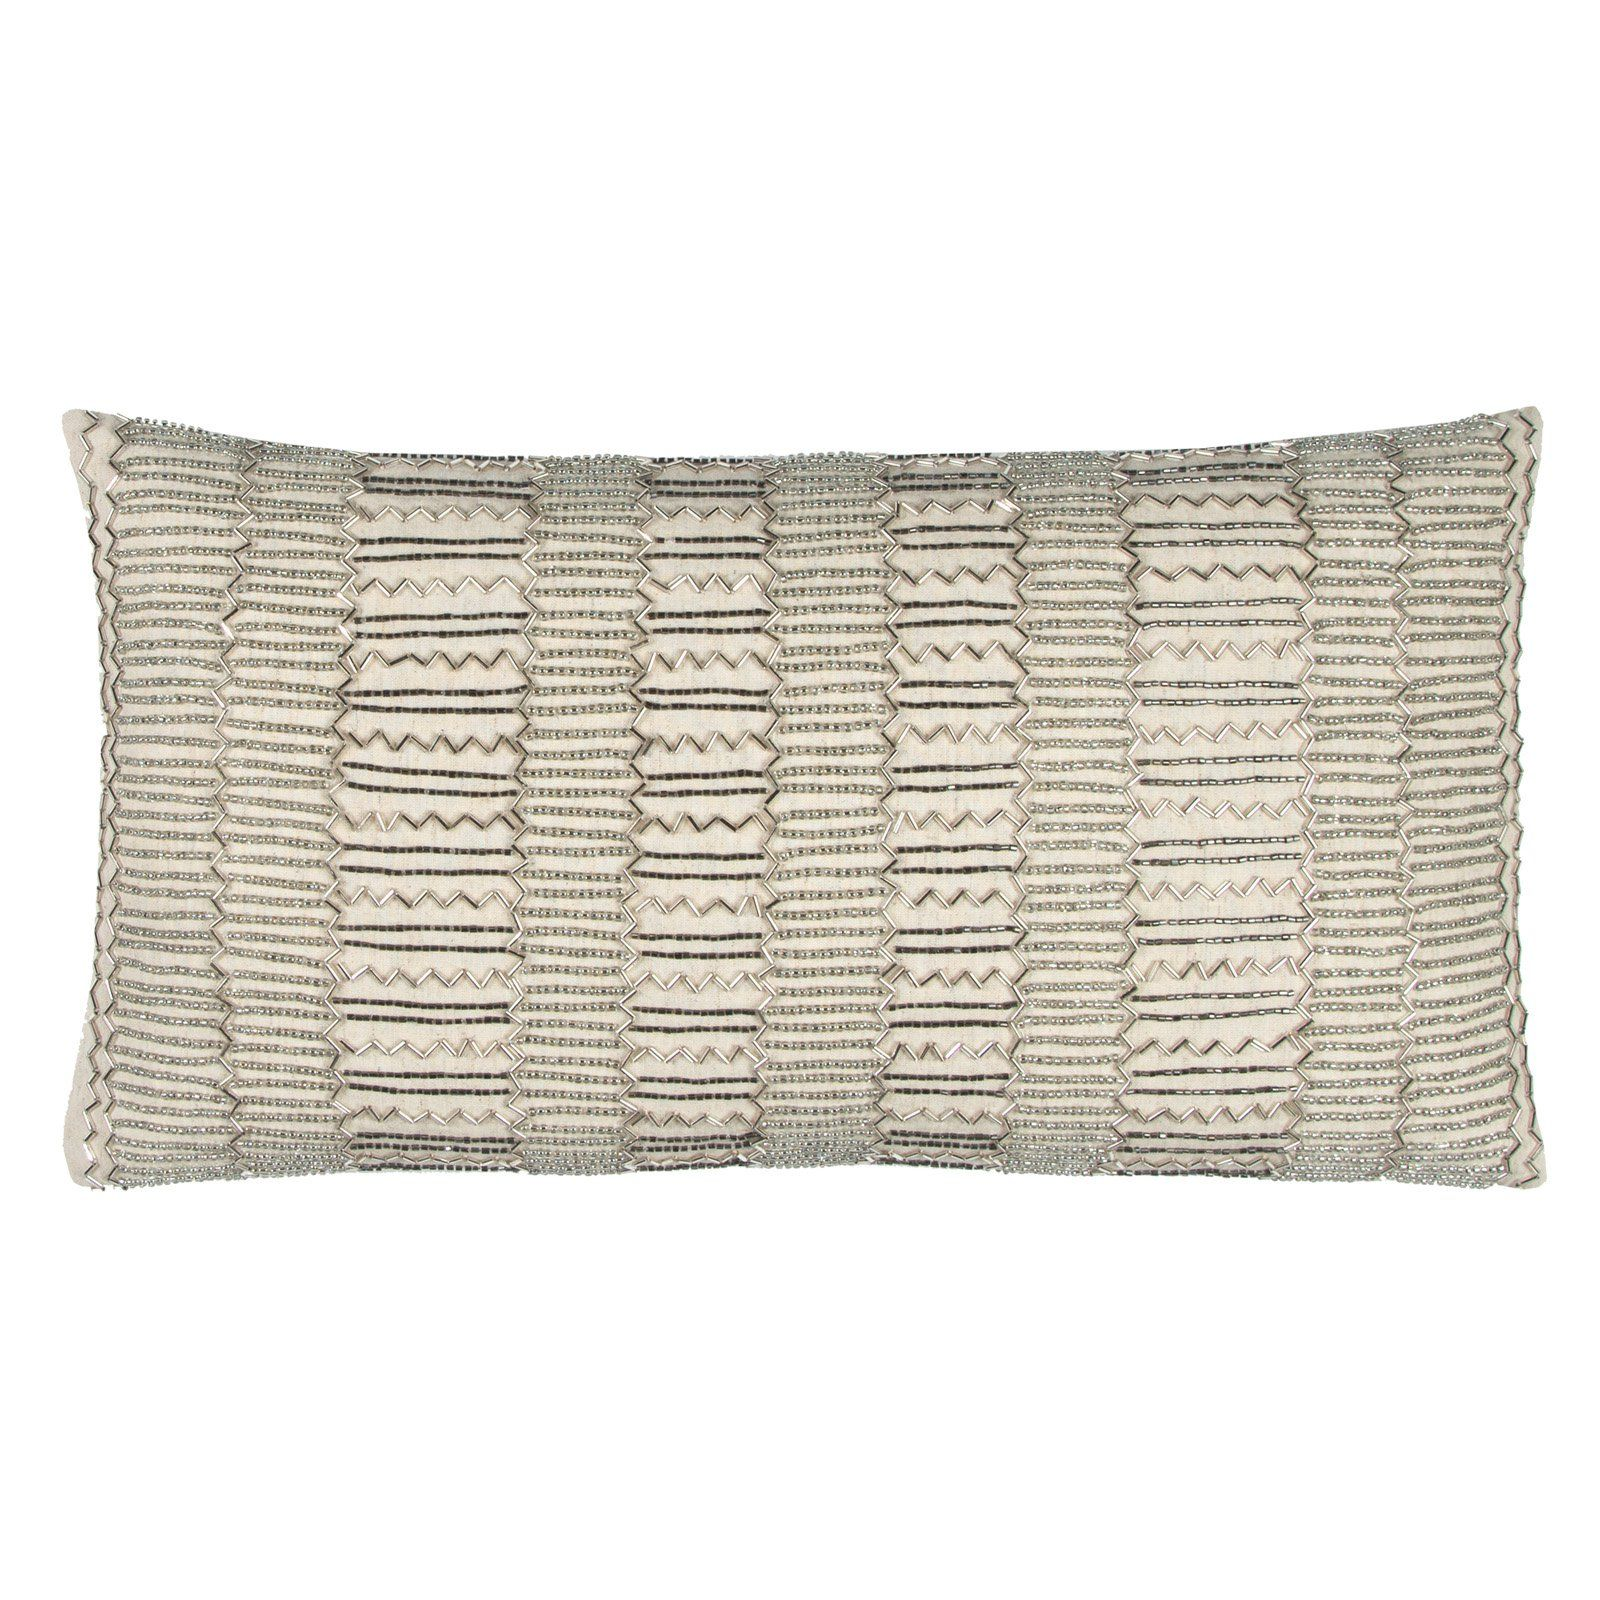 Rizzy Home Embellished Stripes Decorative Pillow - PILT12369NT001121